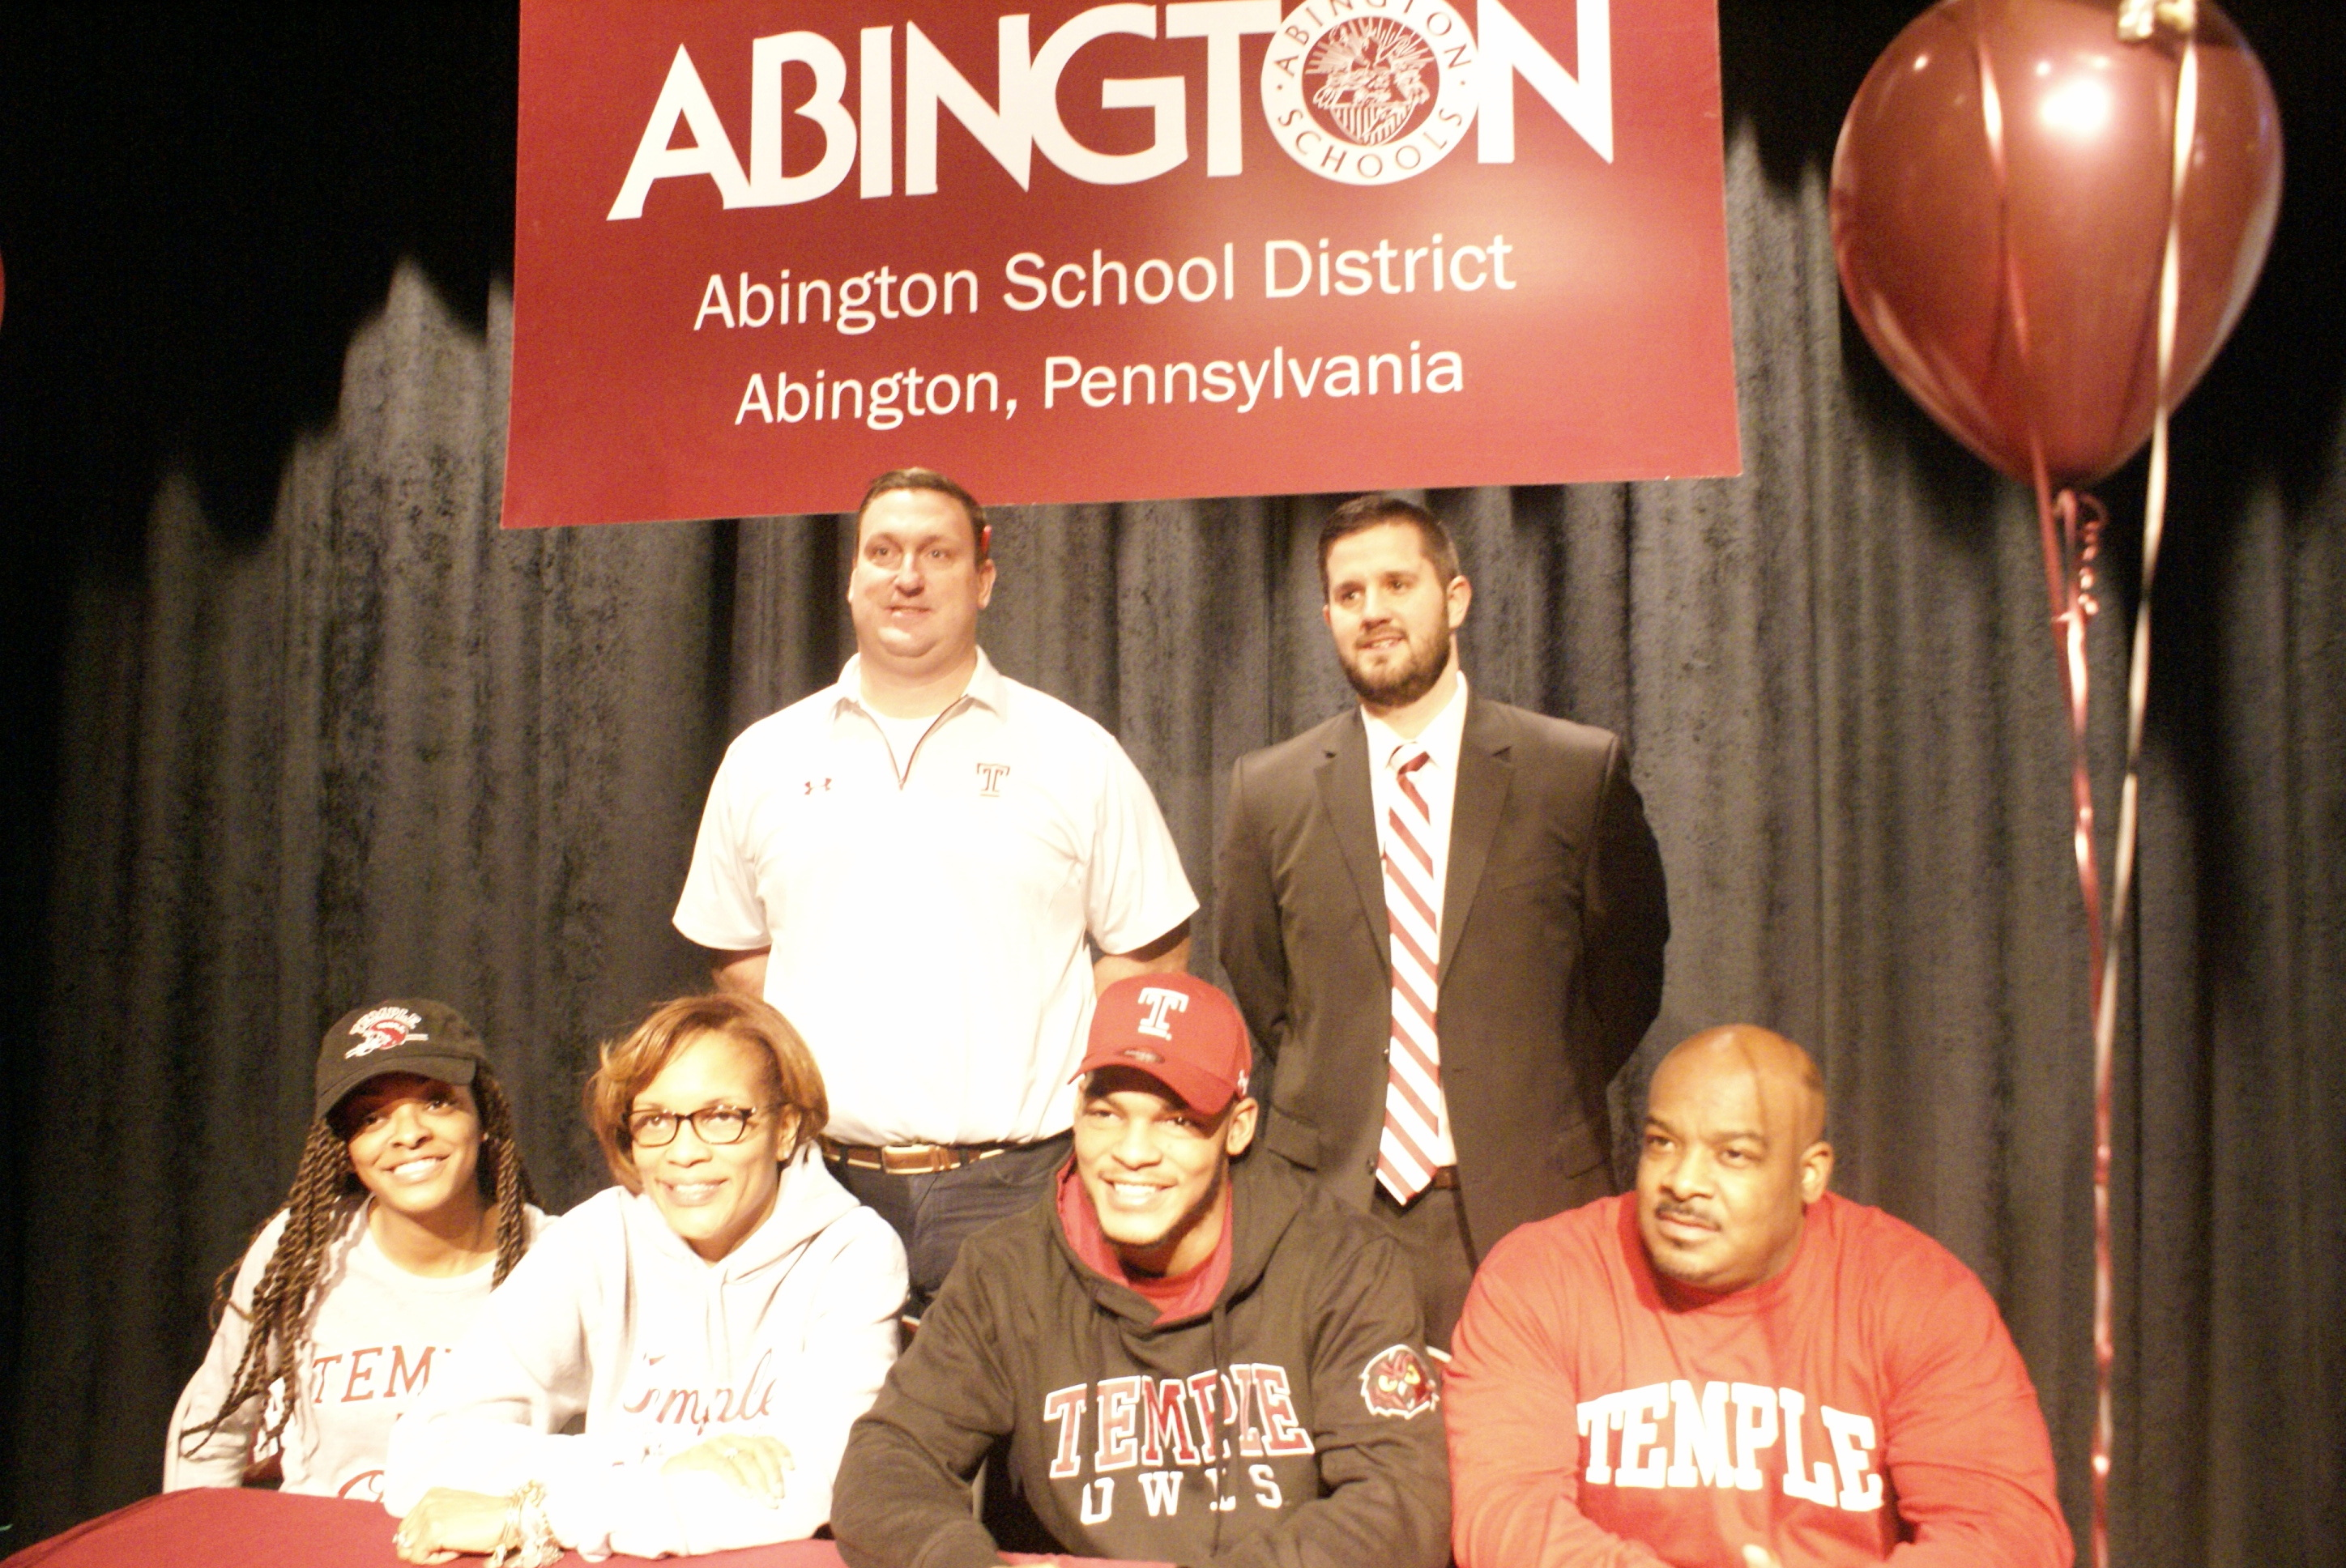 d6ae7b666 Abington Senior High School Celebrates George Reid s College Signing to Temple  University Division I Football